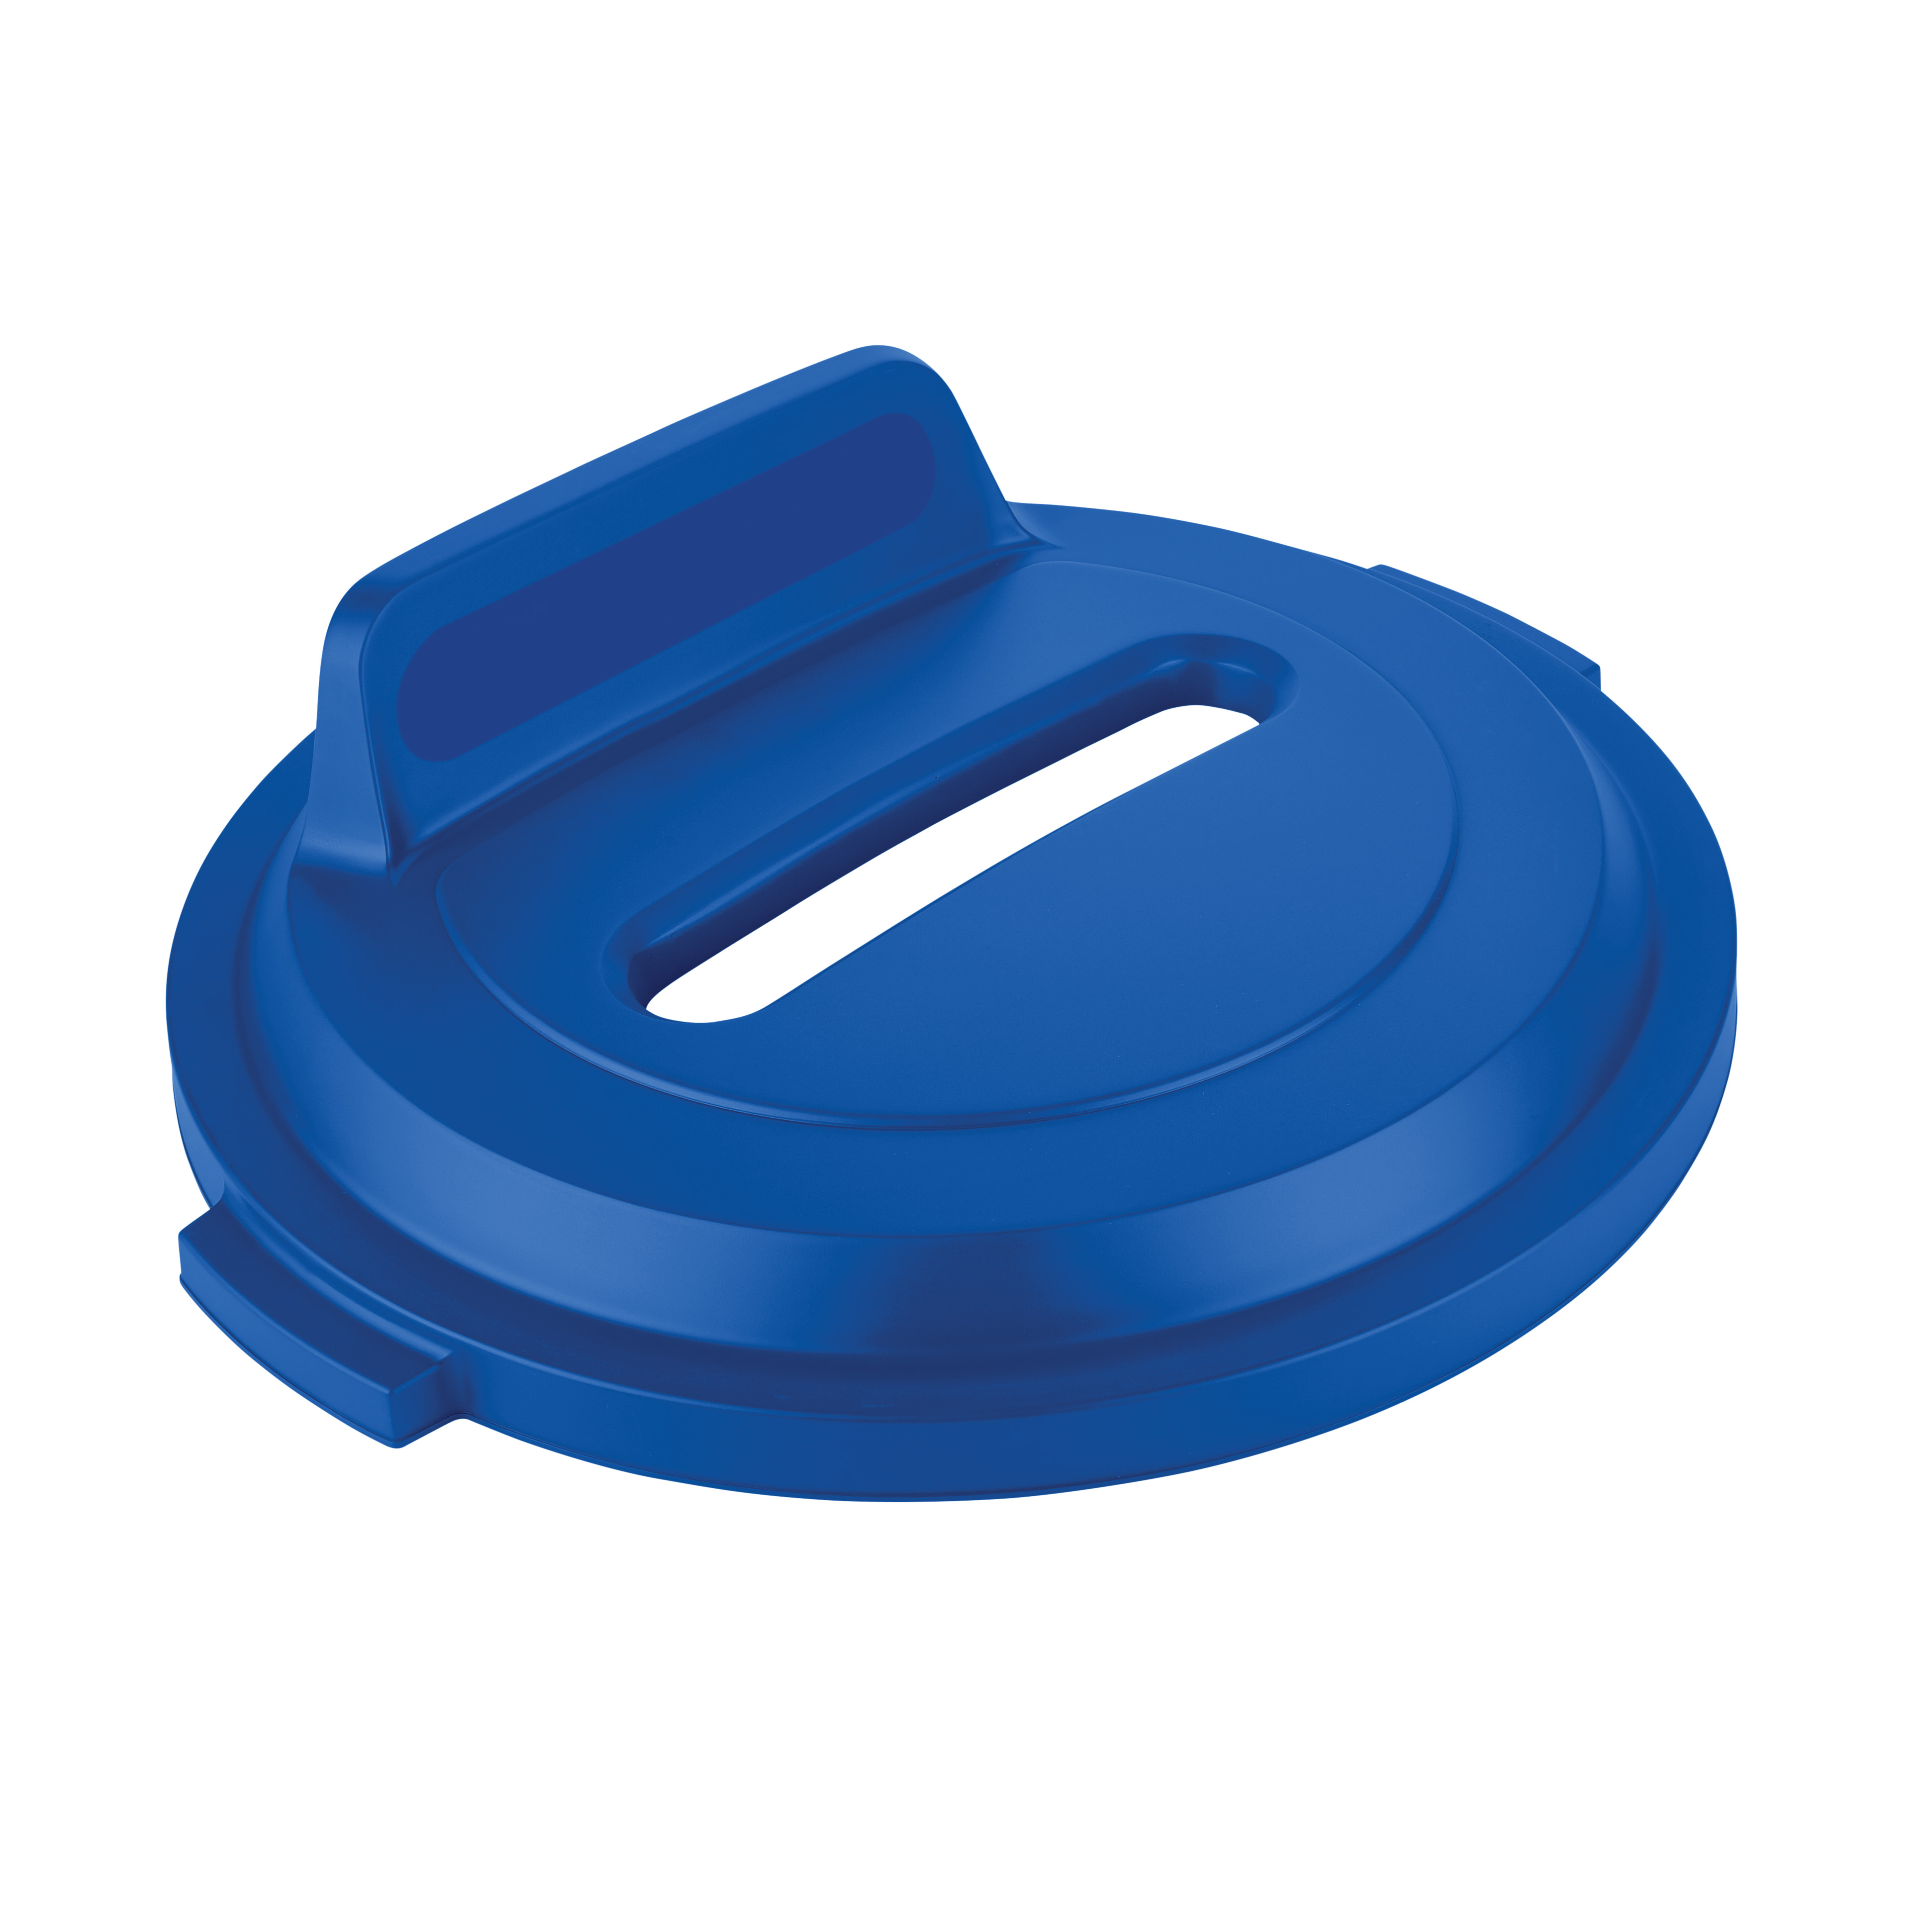 Rubbermaid Commercial Products 2018169 trash receptacle lid / top